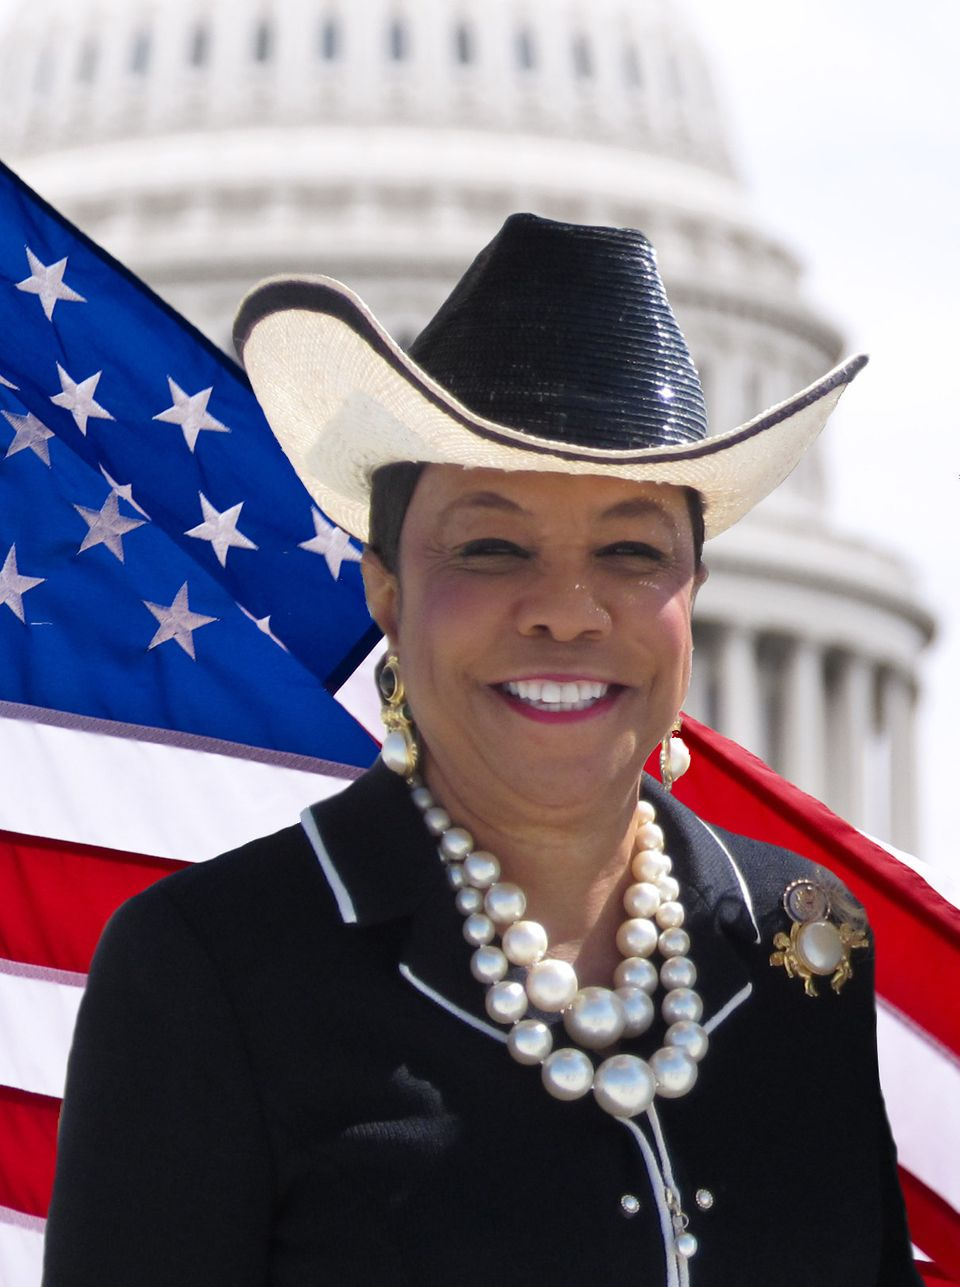 Rep. Frederica Wilson (D-Fla.) is rarely seen without one of her signature, colorful, wide-brimmed hats. She's even said she